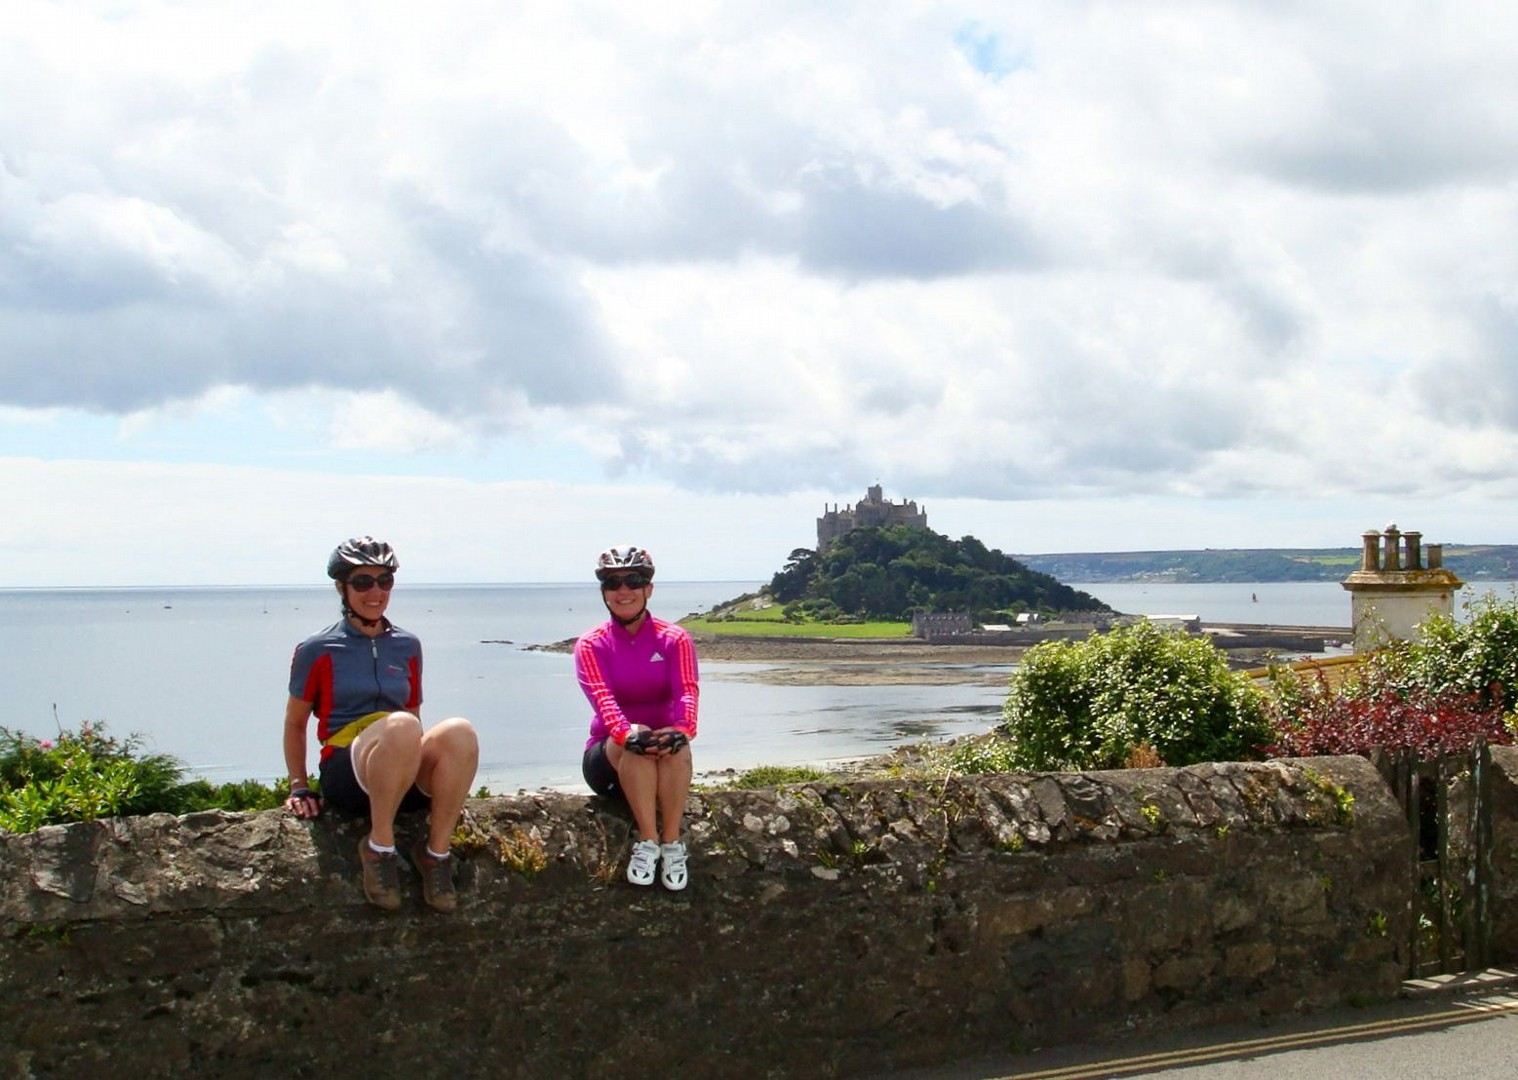 cycling-holiday-sustrans-guided.jpg - UK - Land's End to John O'Groats Explorer (22 days) - Guided Cycling Holiday - Road Cycling